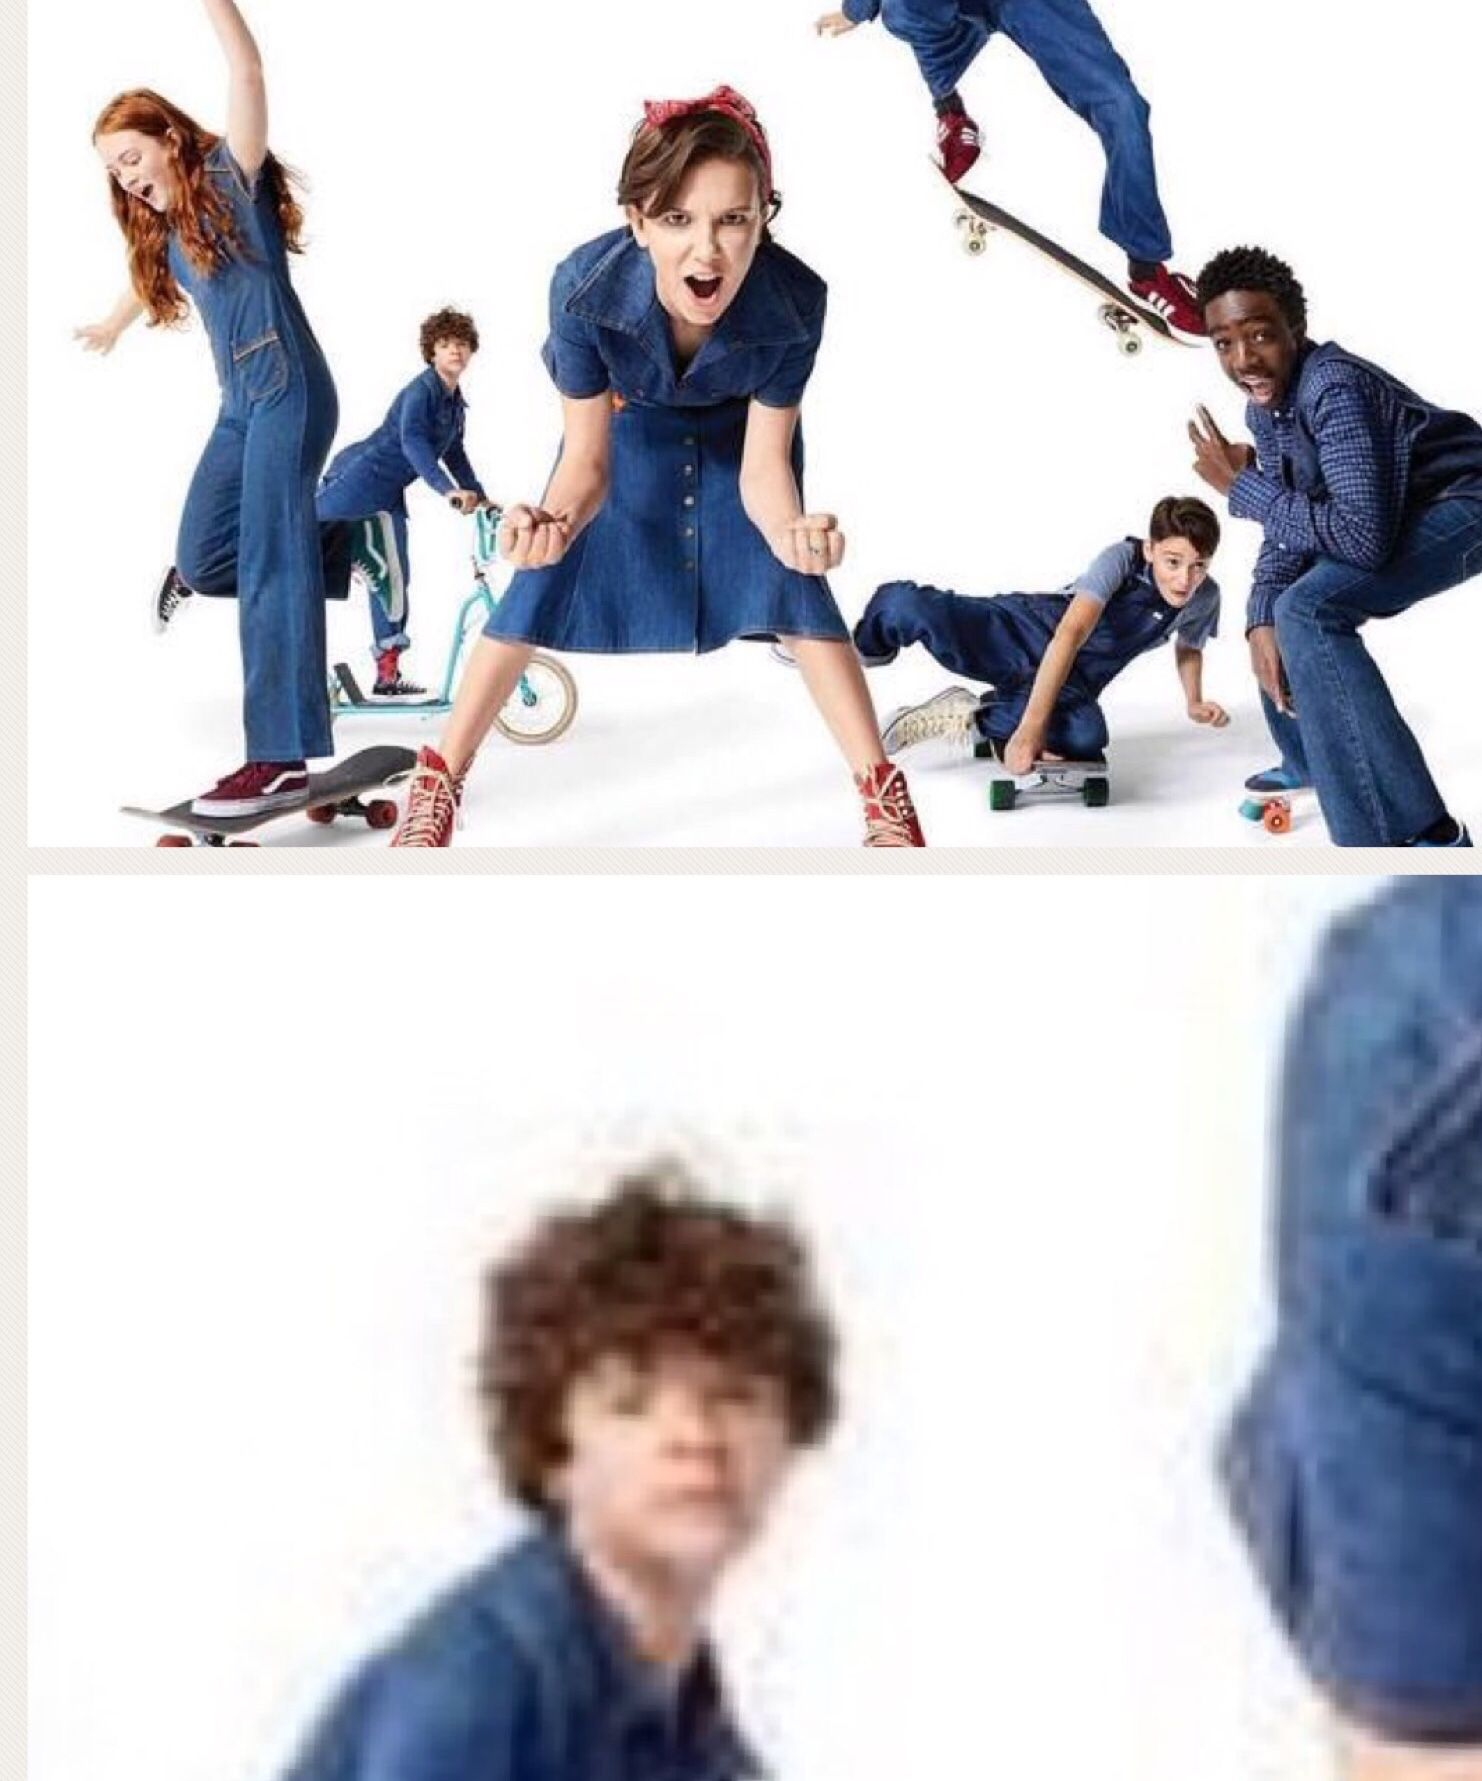 Gaten's face is like 'wut am i doin here' #strangerthings #season2 #strangerdanger